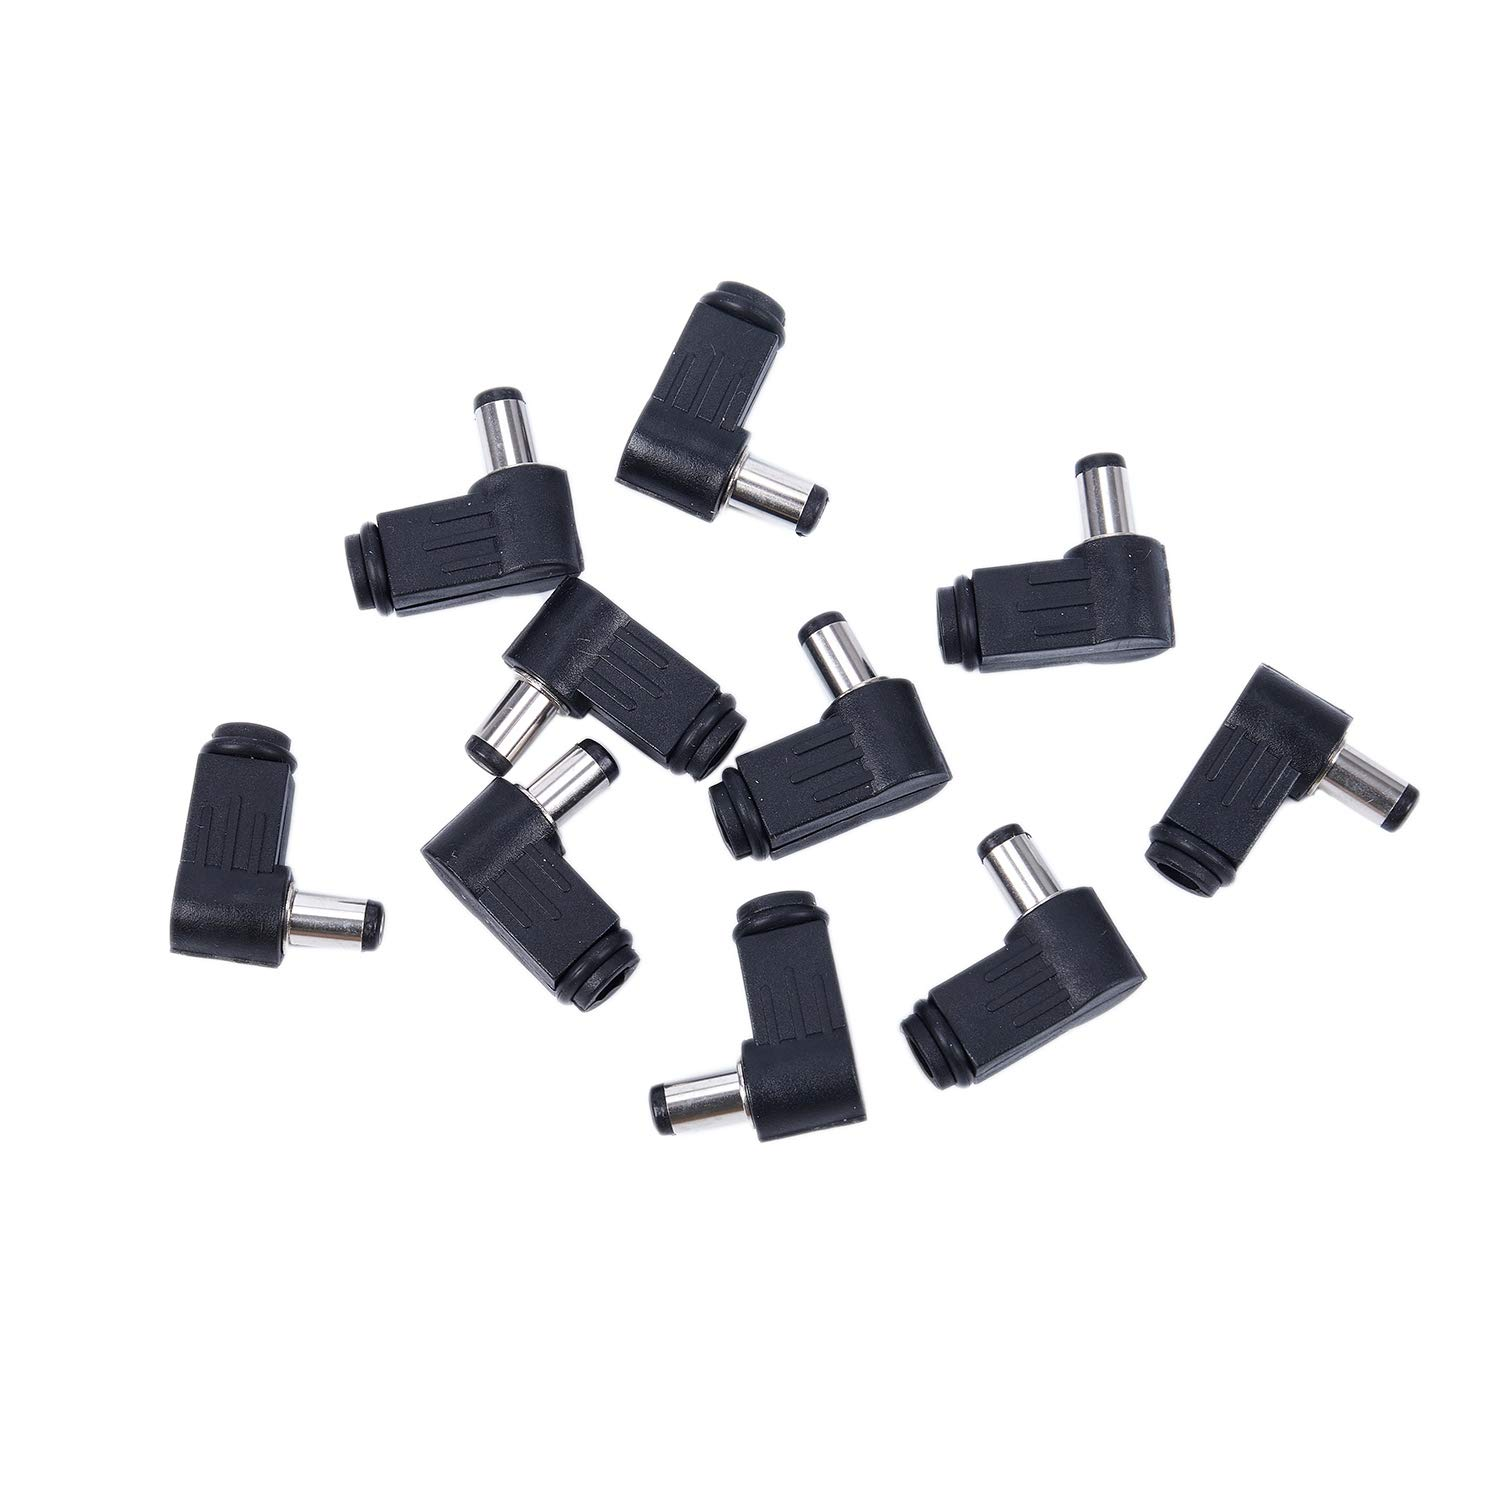 TOOGOO(R) 10x 2.1mm x 5.5mm Male Plug Right Angle L Jack DC Power Connector